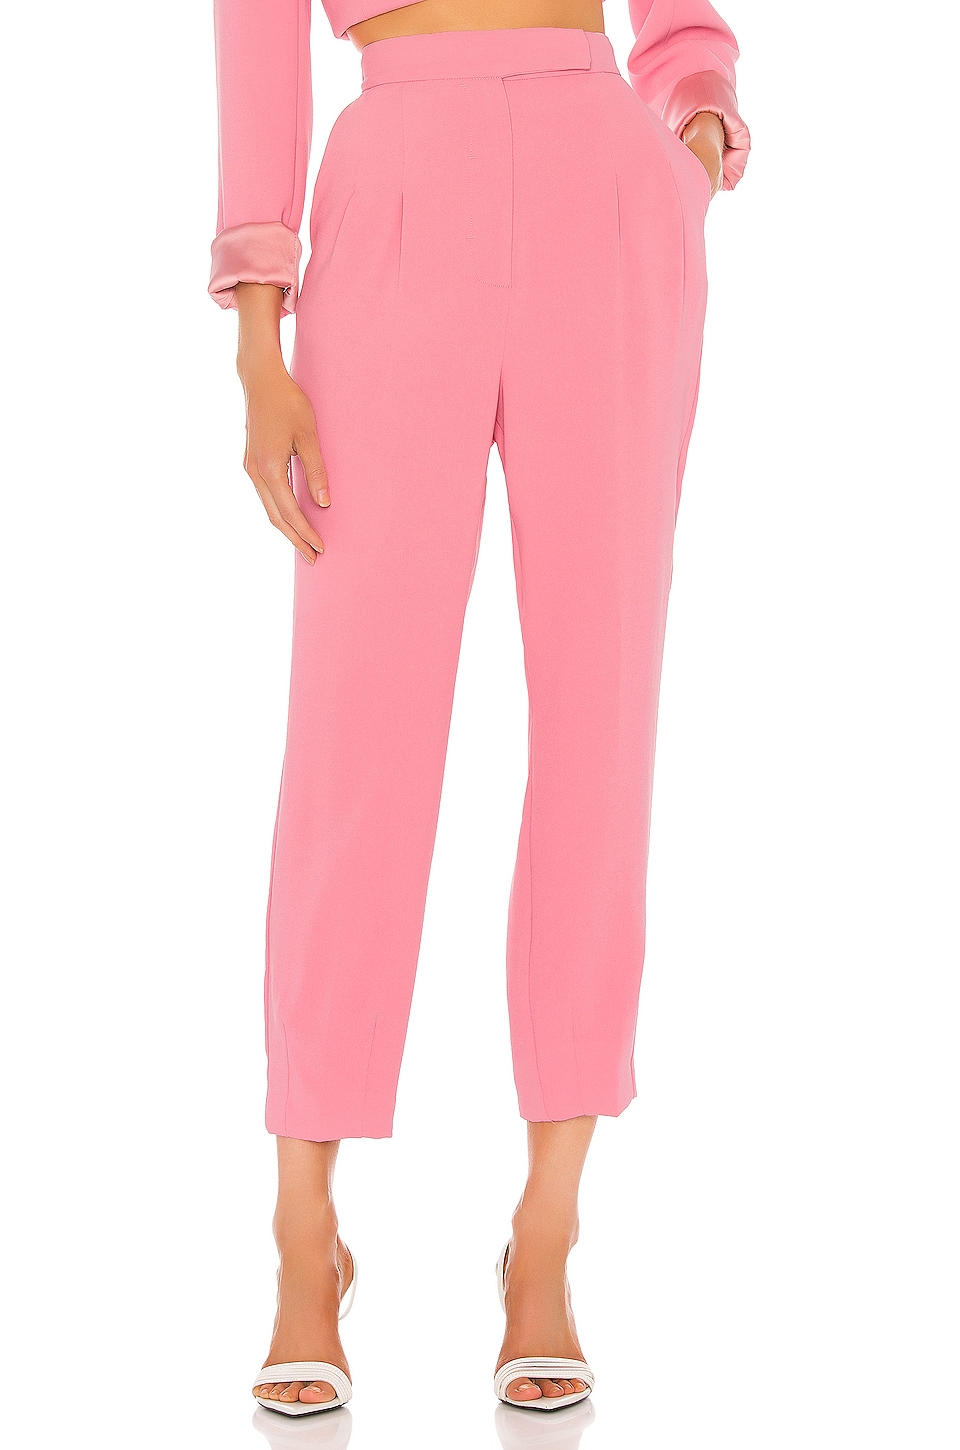 C/MEO Hereafter Pant in Pink